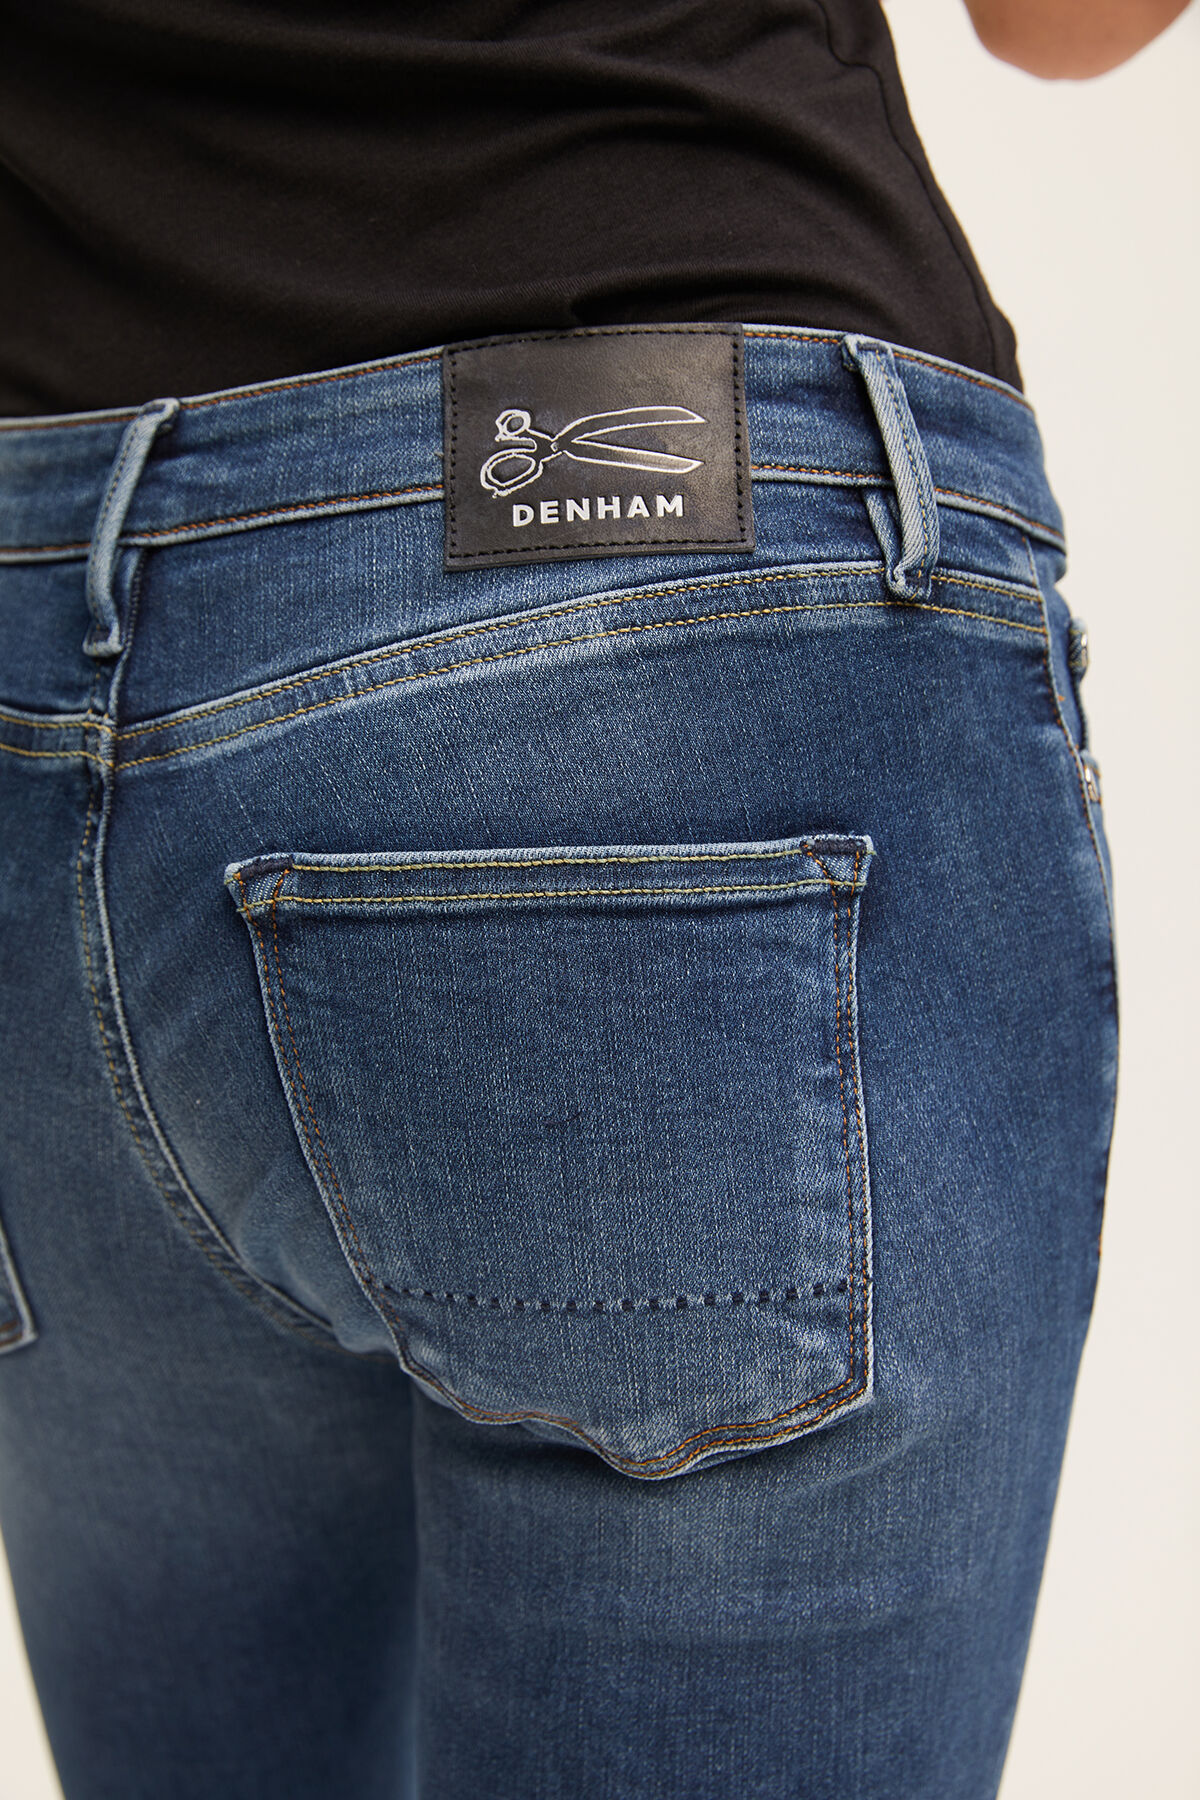 SPRAY Low Impact Washed Denim - Mid-Rise, Tight Fit